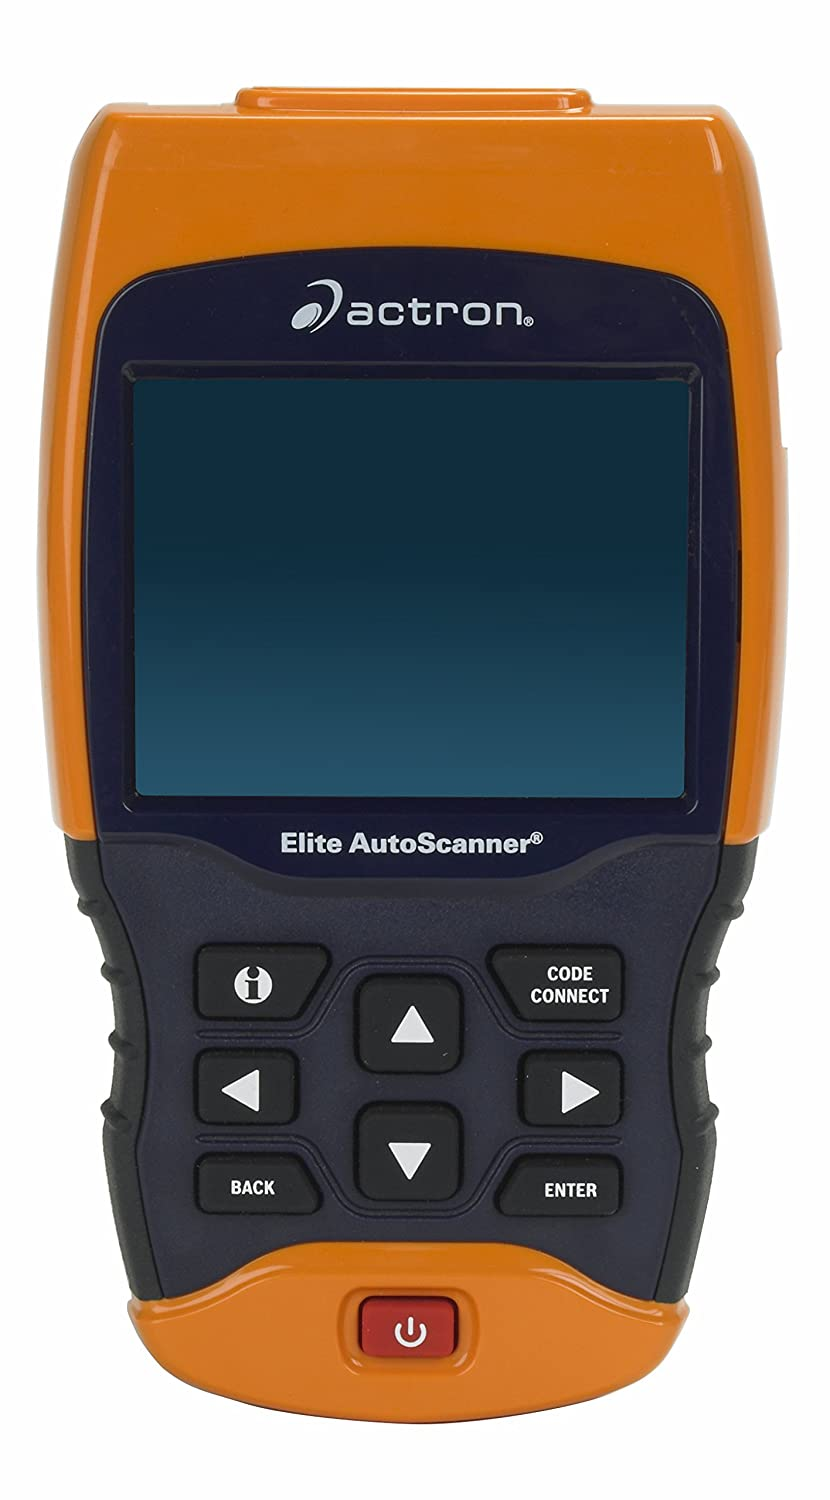 Actron CP9690 Trilingual OBD I/OBD II Elite AUTOSCANNER Pro Kit with Color Screen